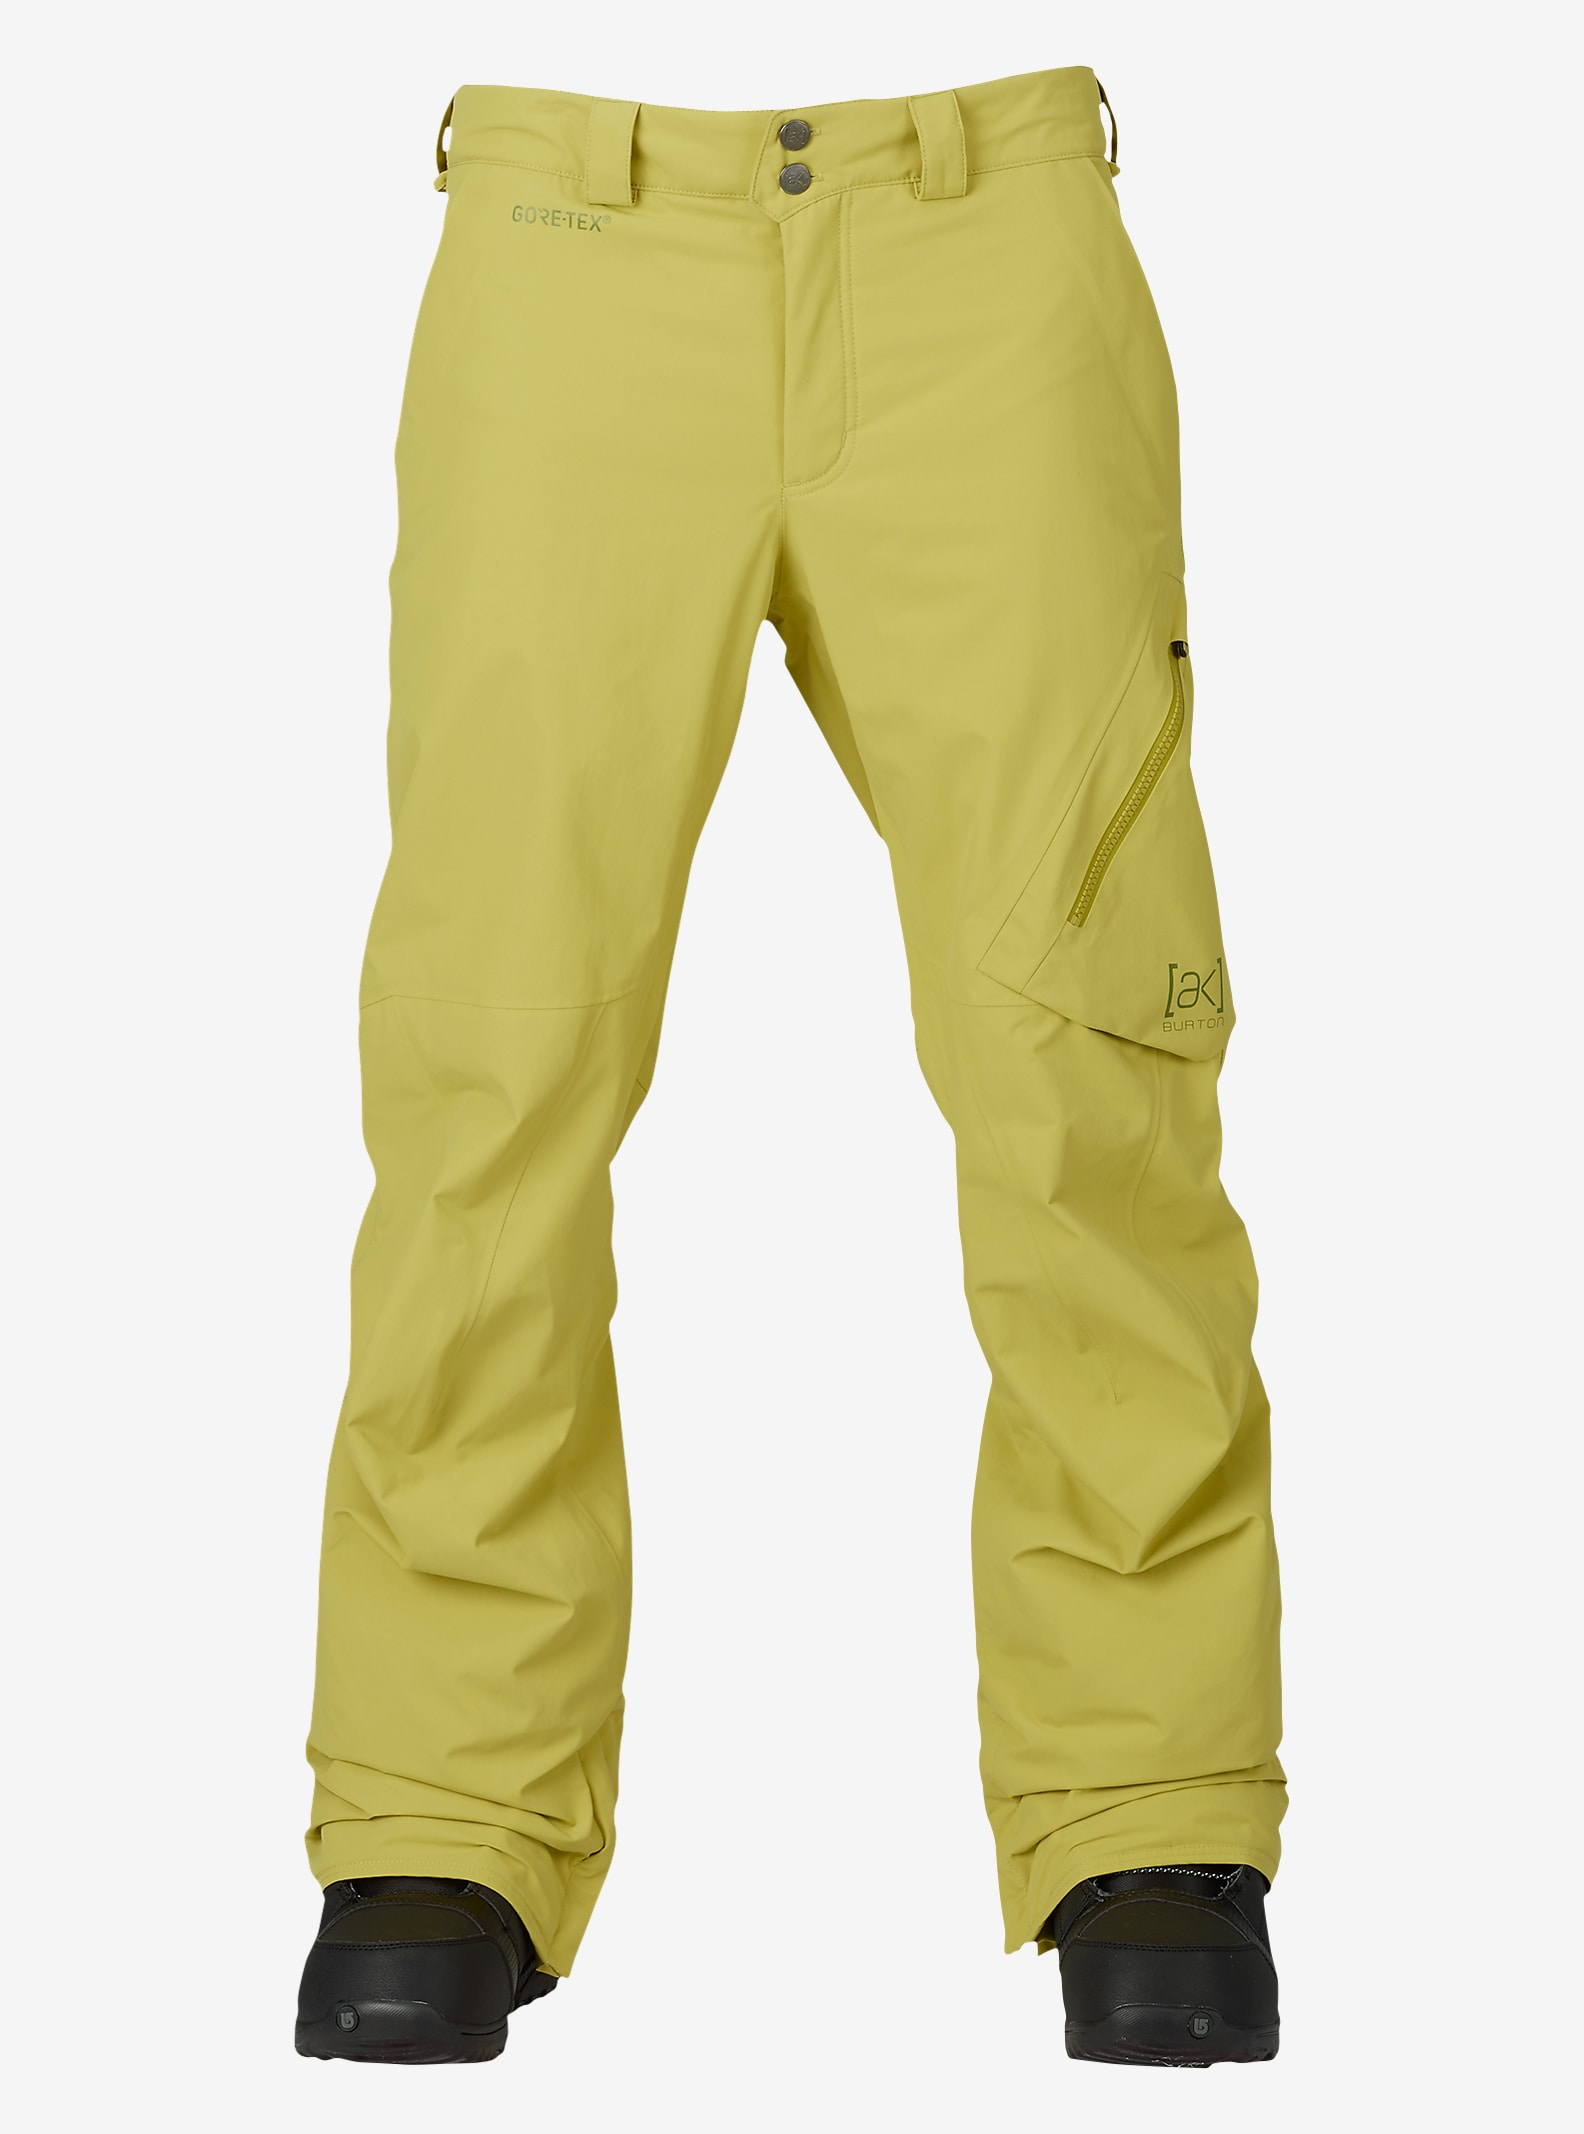 Burton [ak] 2L Cyclic Pant shown in Poison Dart